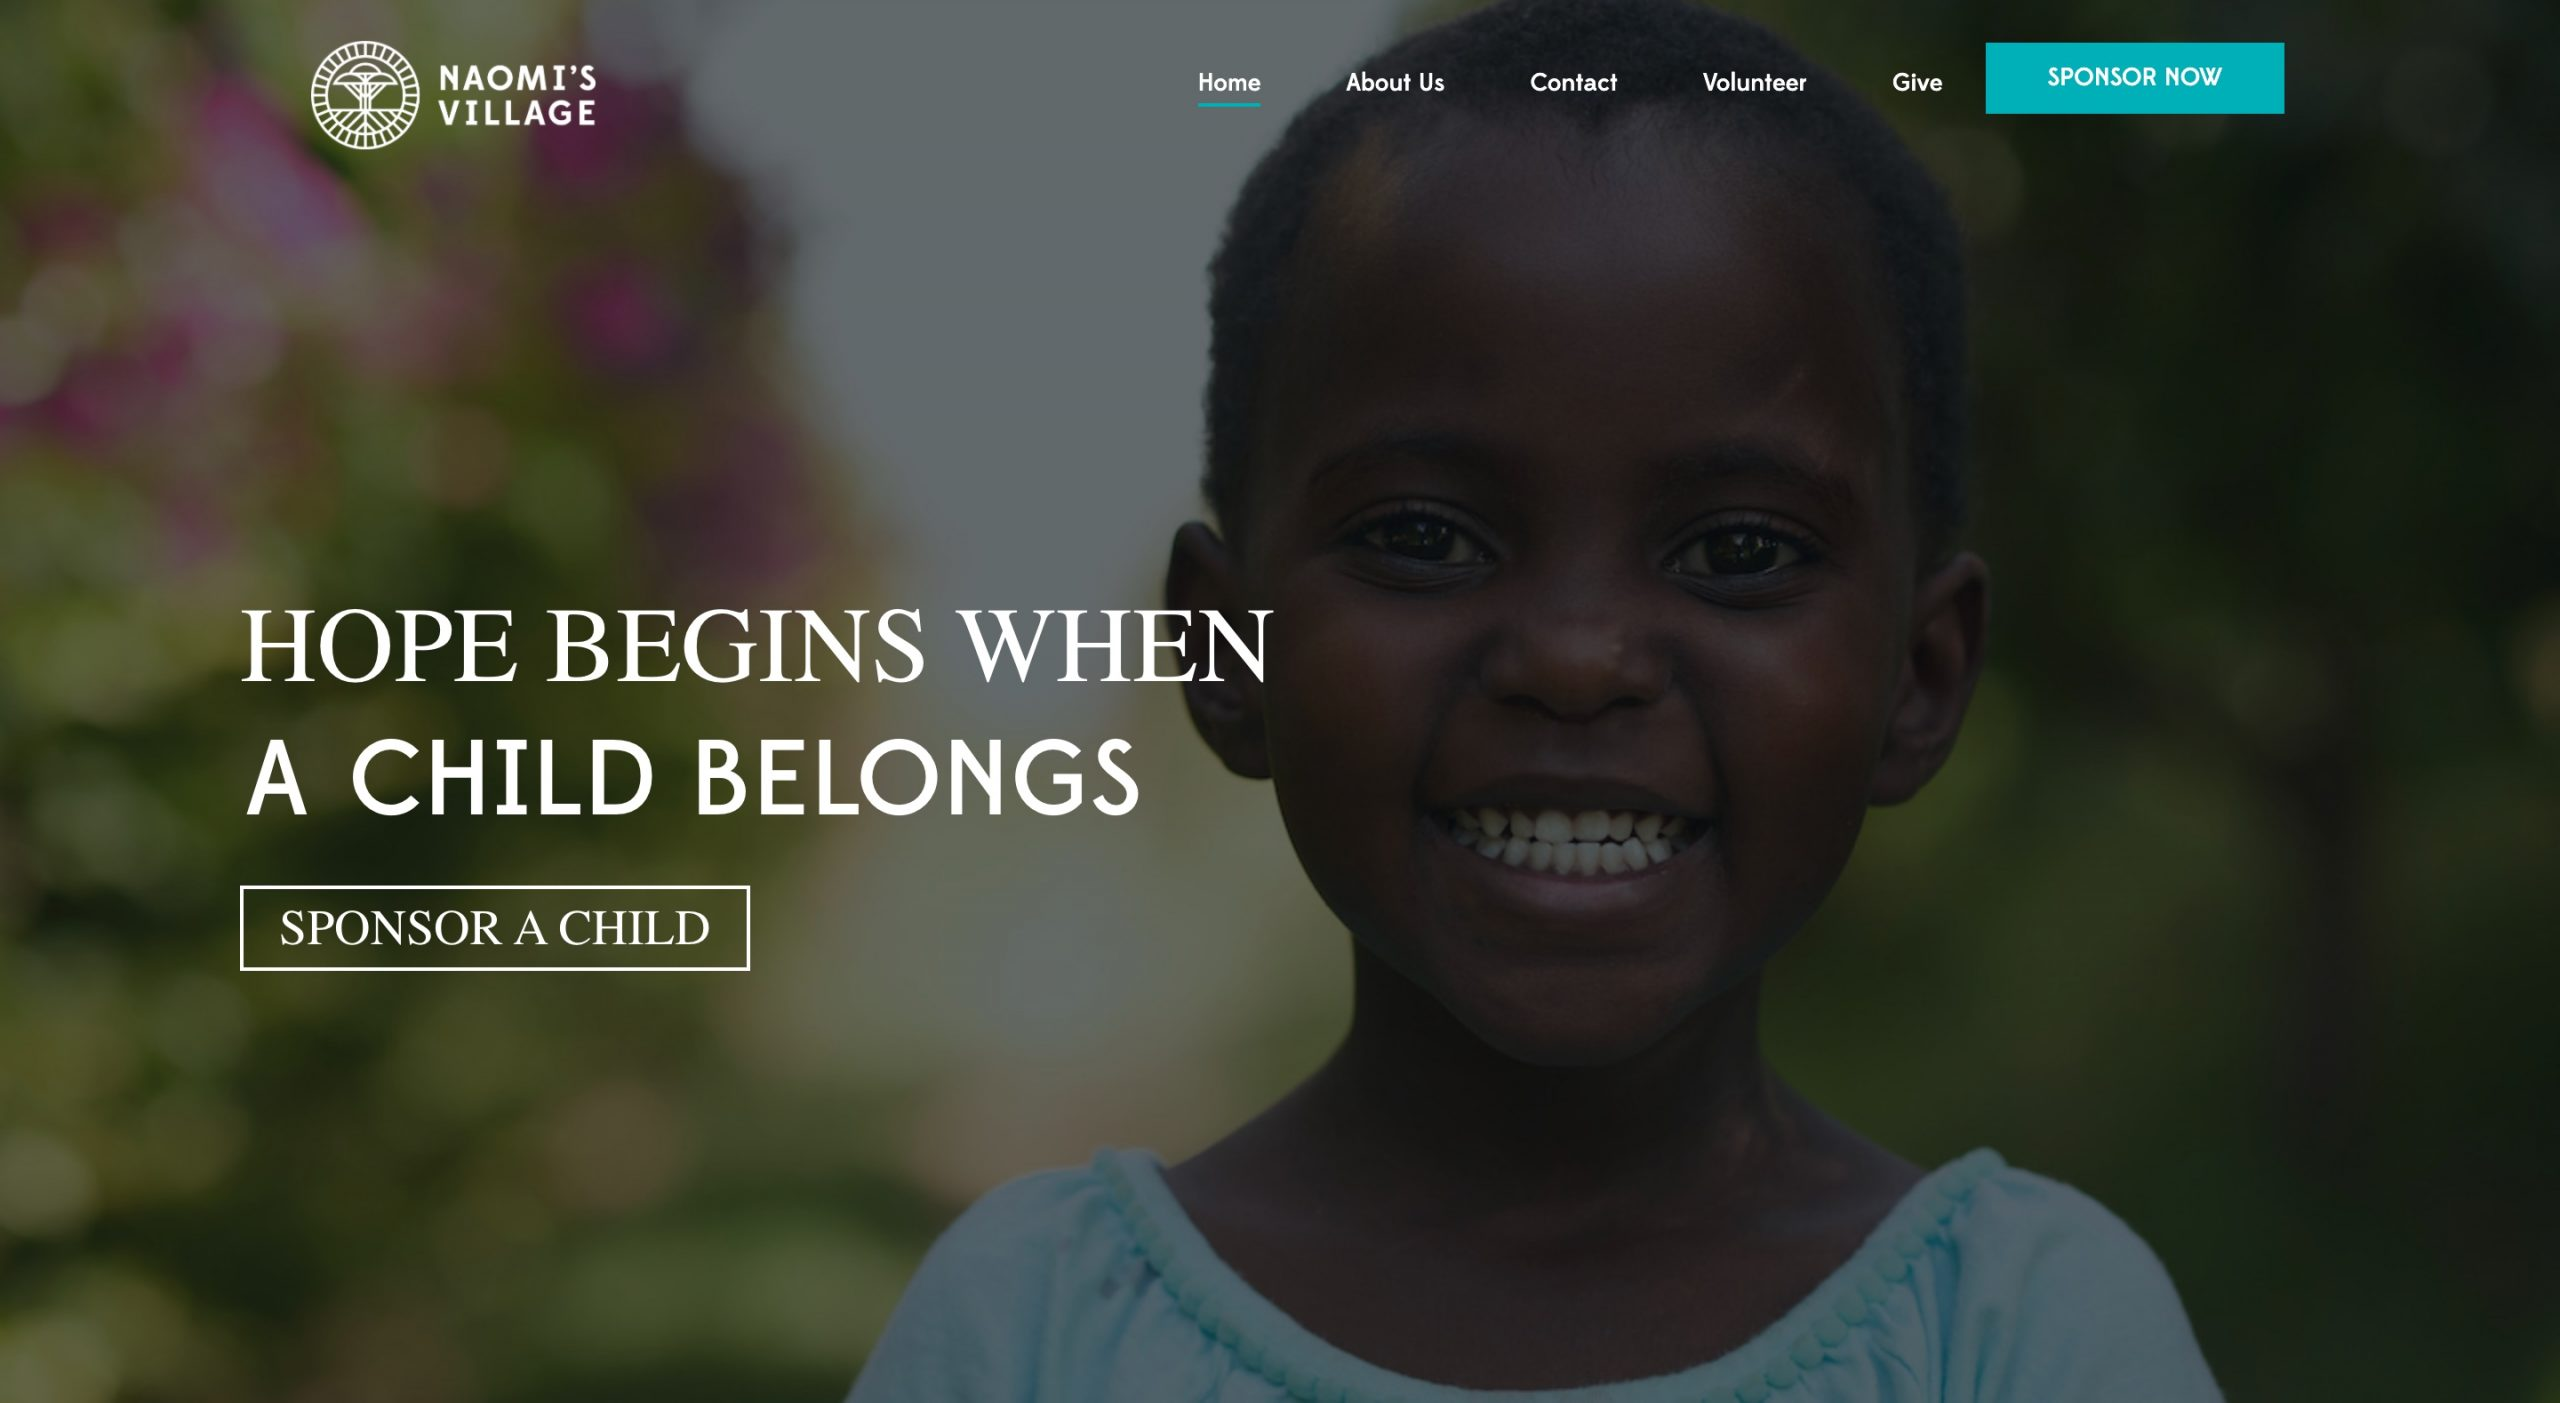 website with customized donation button text